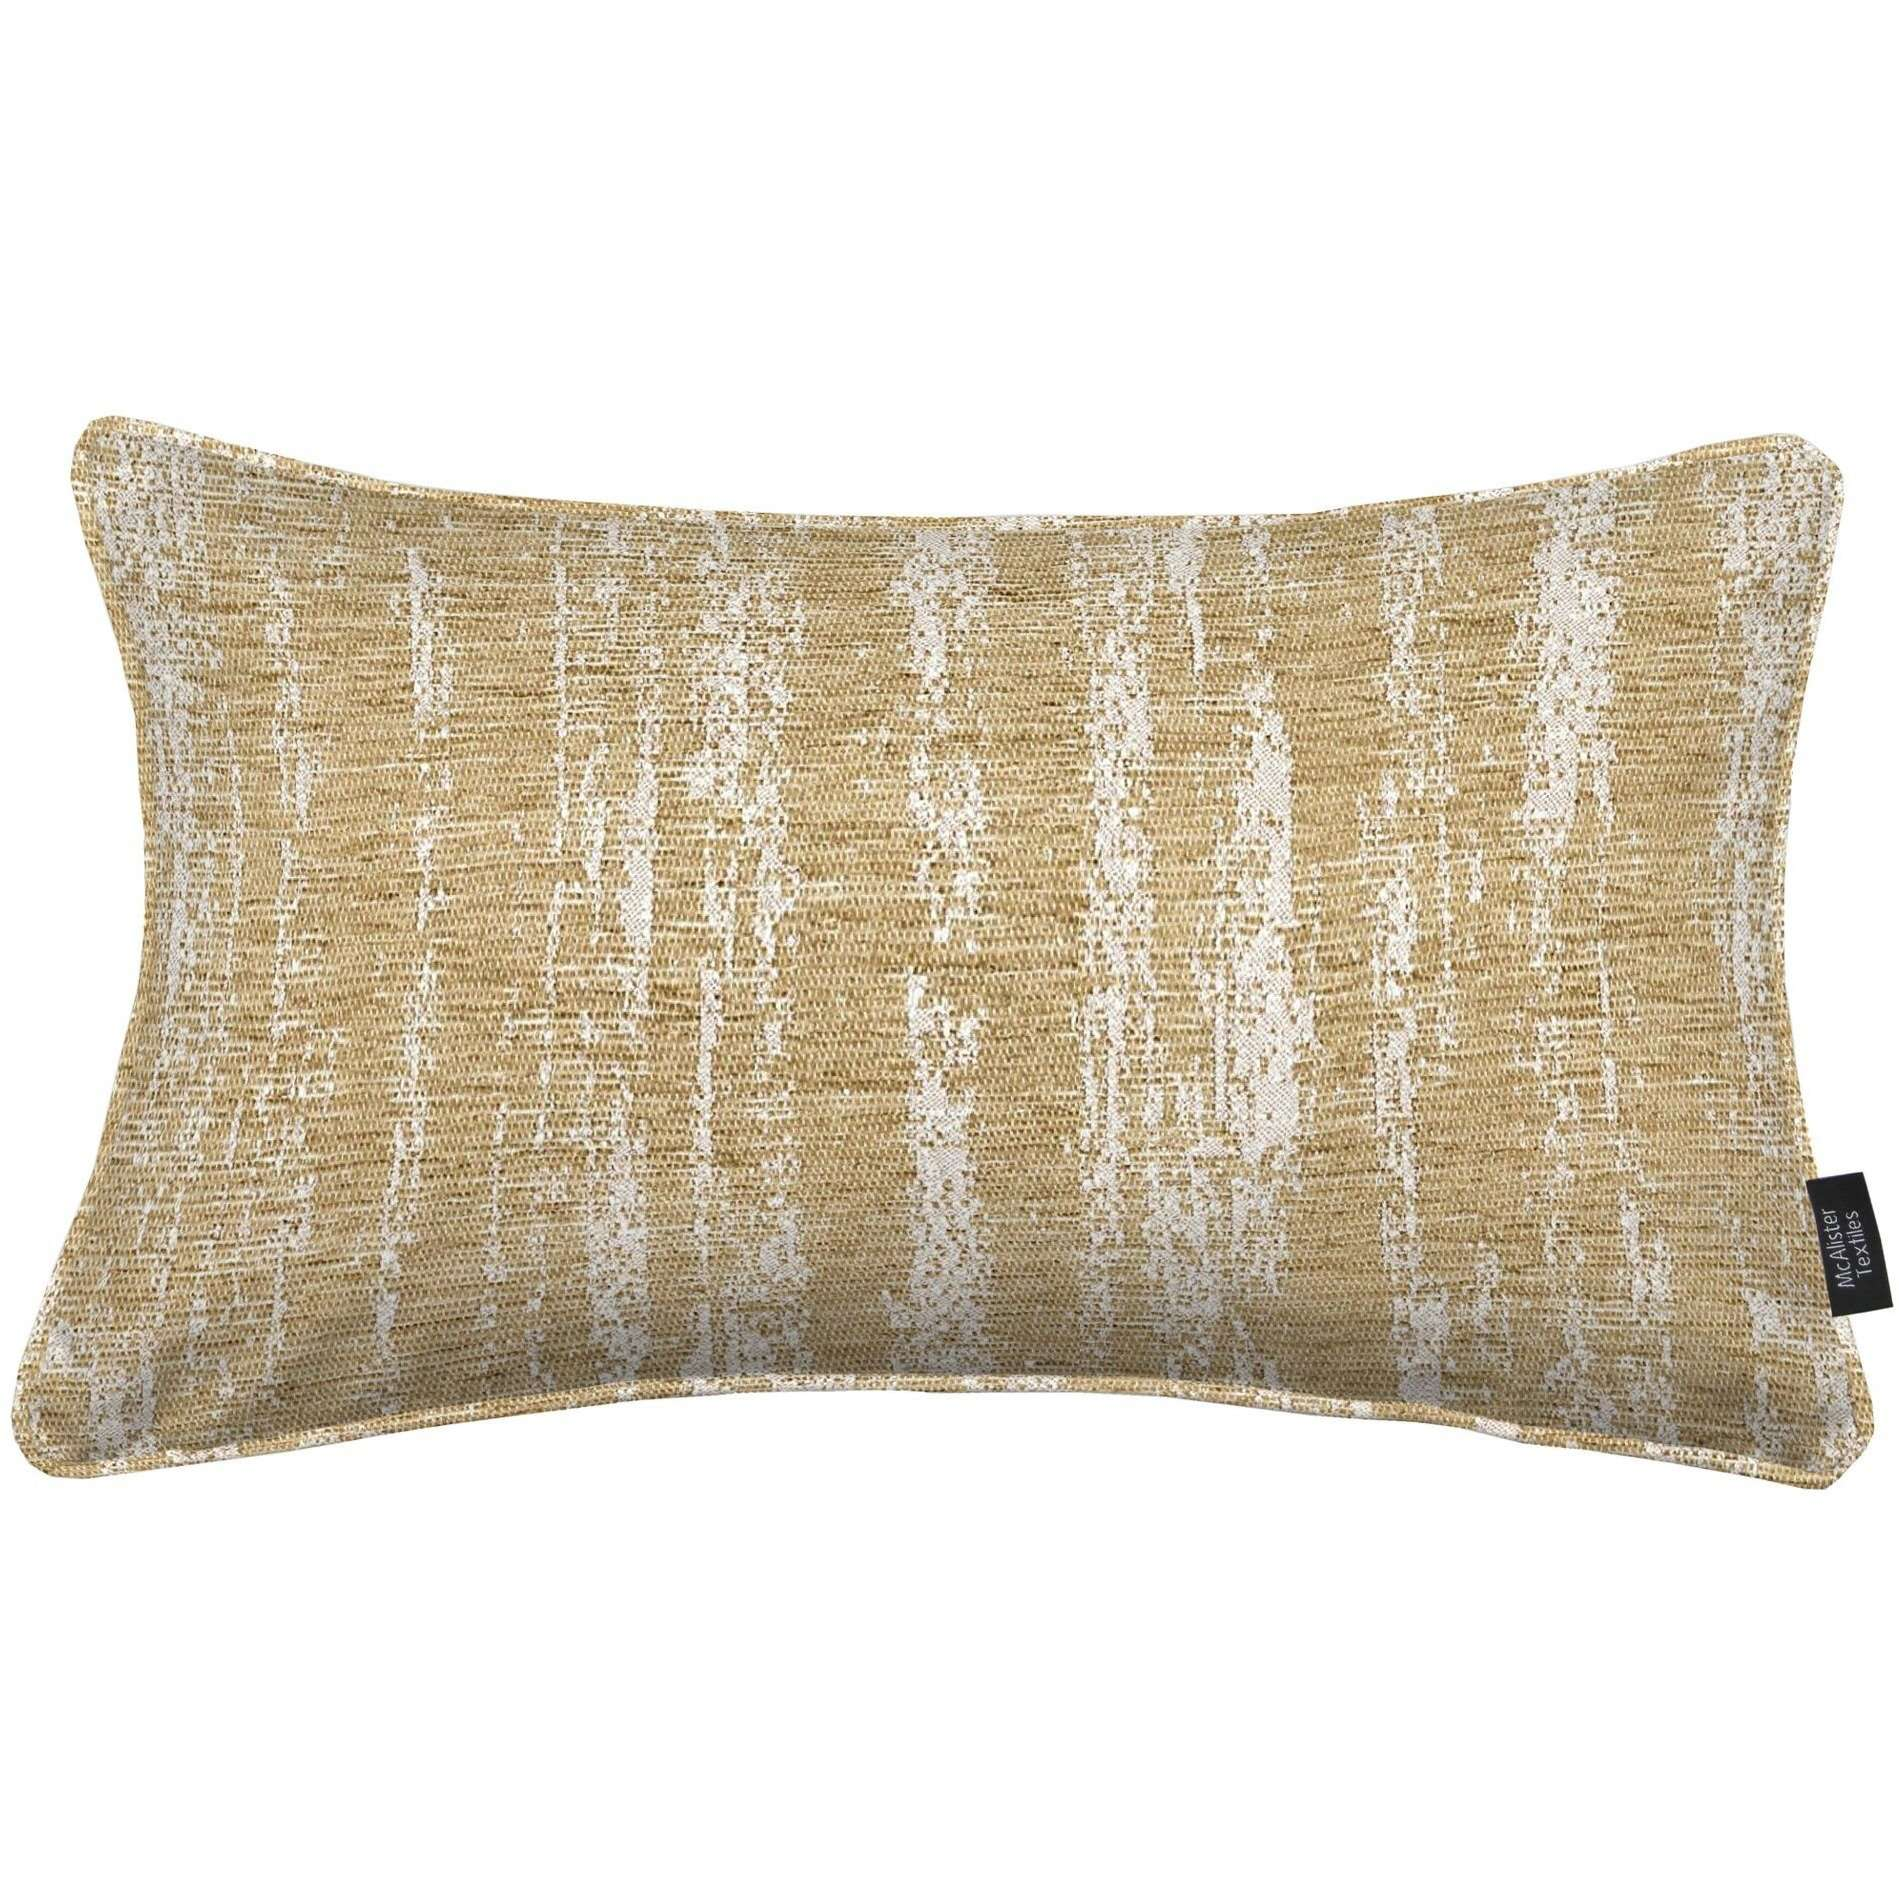 McAlister Textiles Textured Chenille Beige Cream Pillow Pillow Cover Only 50cm x 30cm